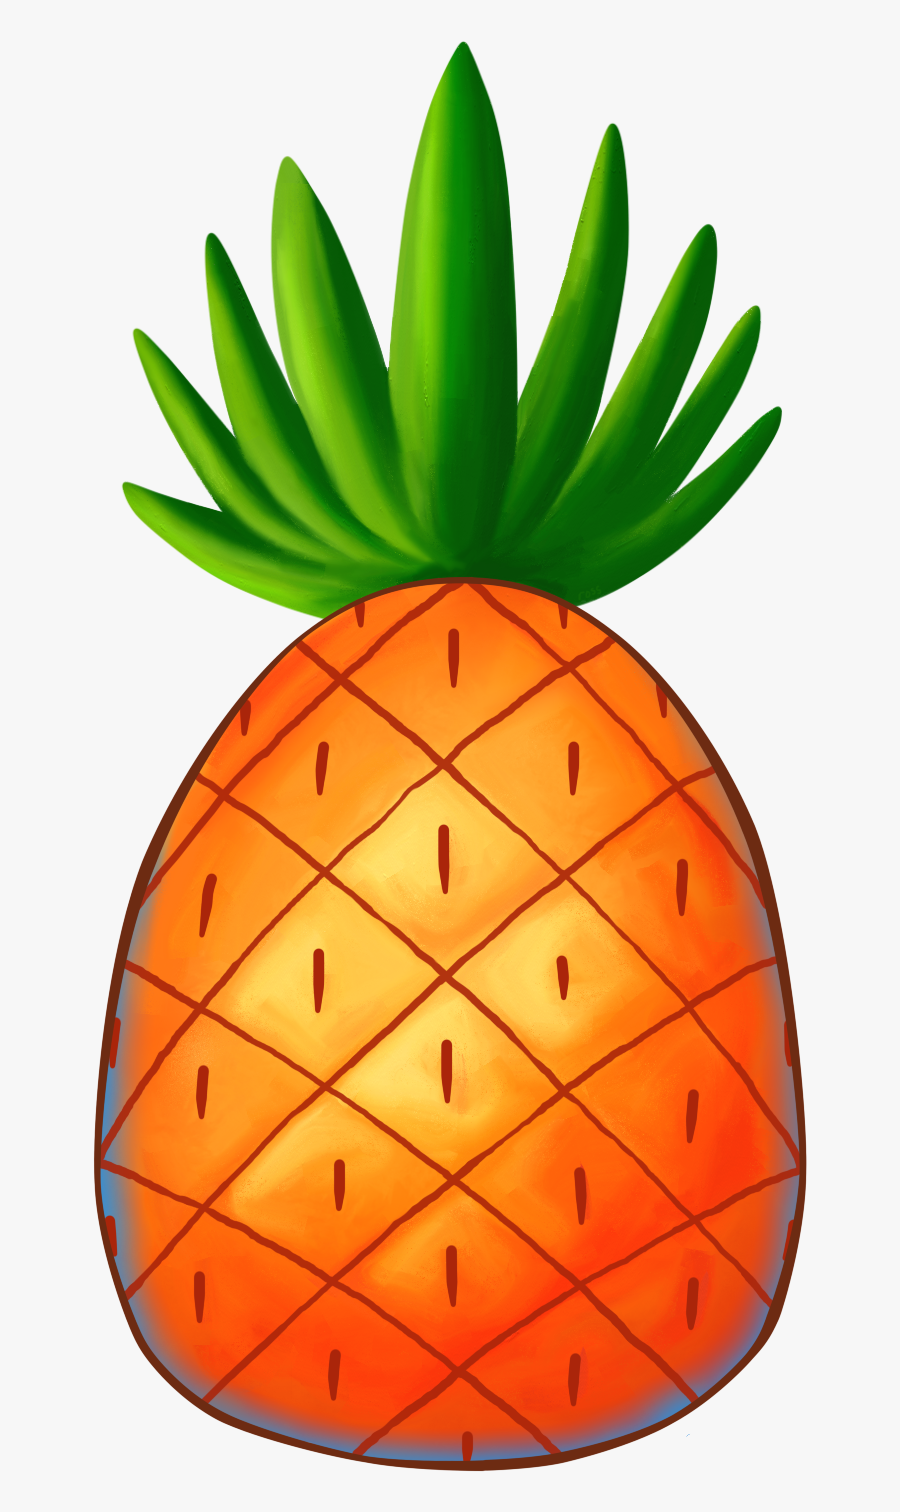 Pineapple Png Images Transparent Free Download - Spongebob Pineapple Png, Transparent Clipart